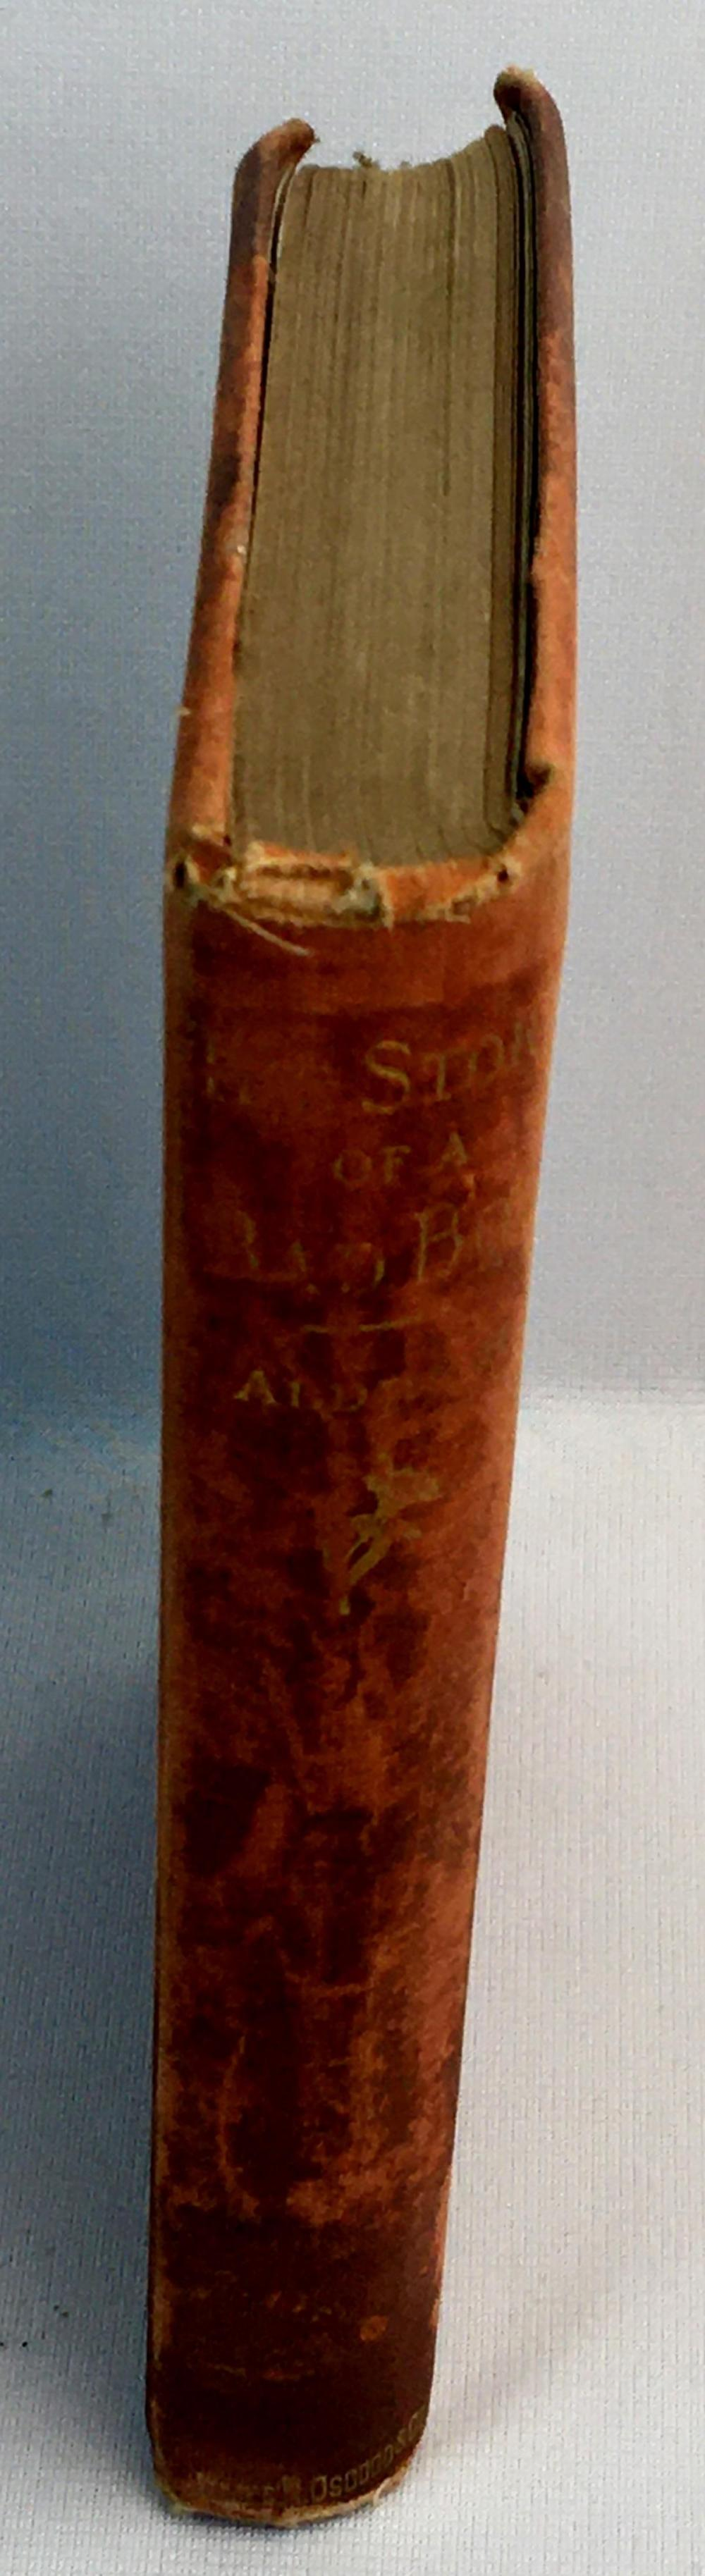 1876 The Story of a Bad Boy by Thomas Bailey Aldrich ILLUSTRATED